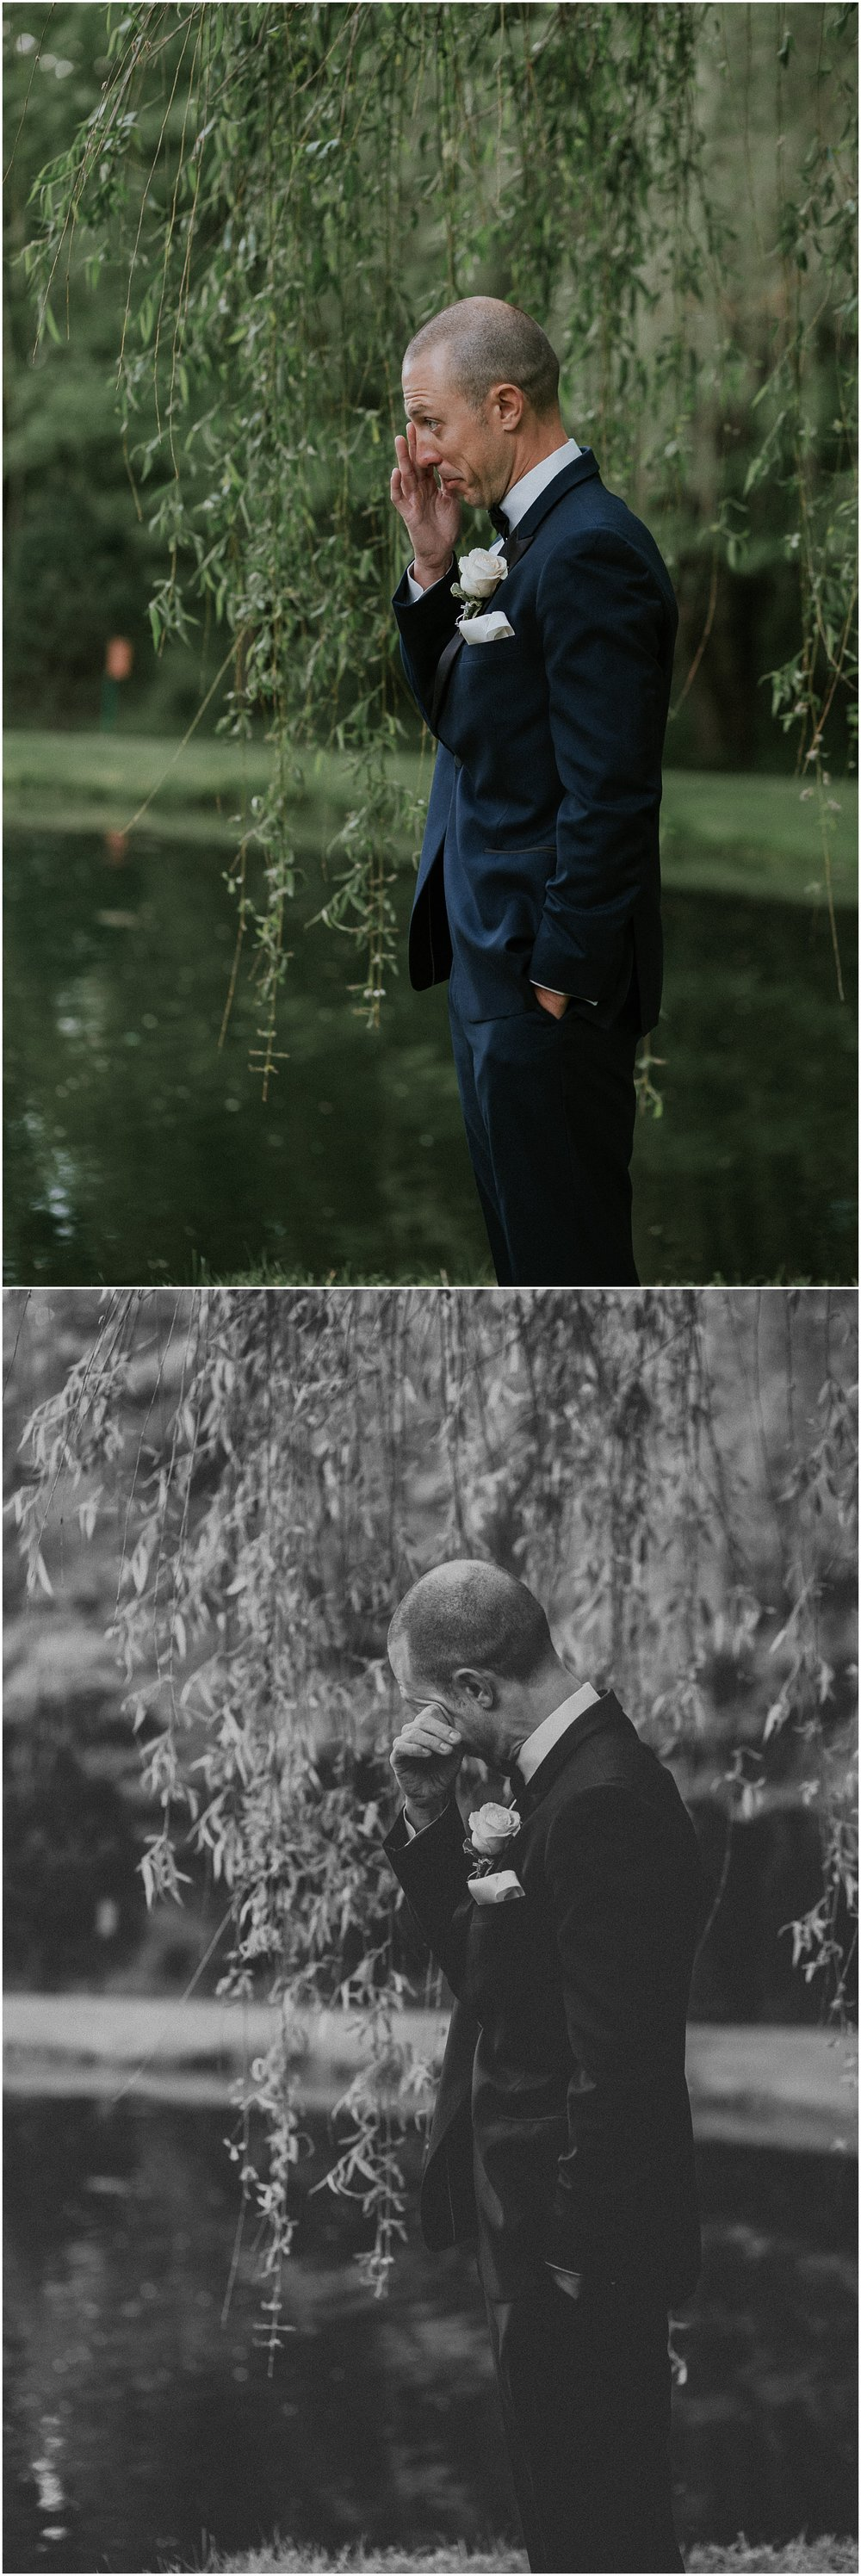 Bride and Groom share emotional and tender first look under romantic willow tree at The Historic Acres of Hershey in Hershey Pennsylvania